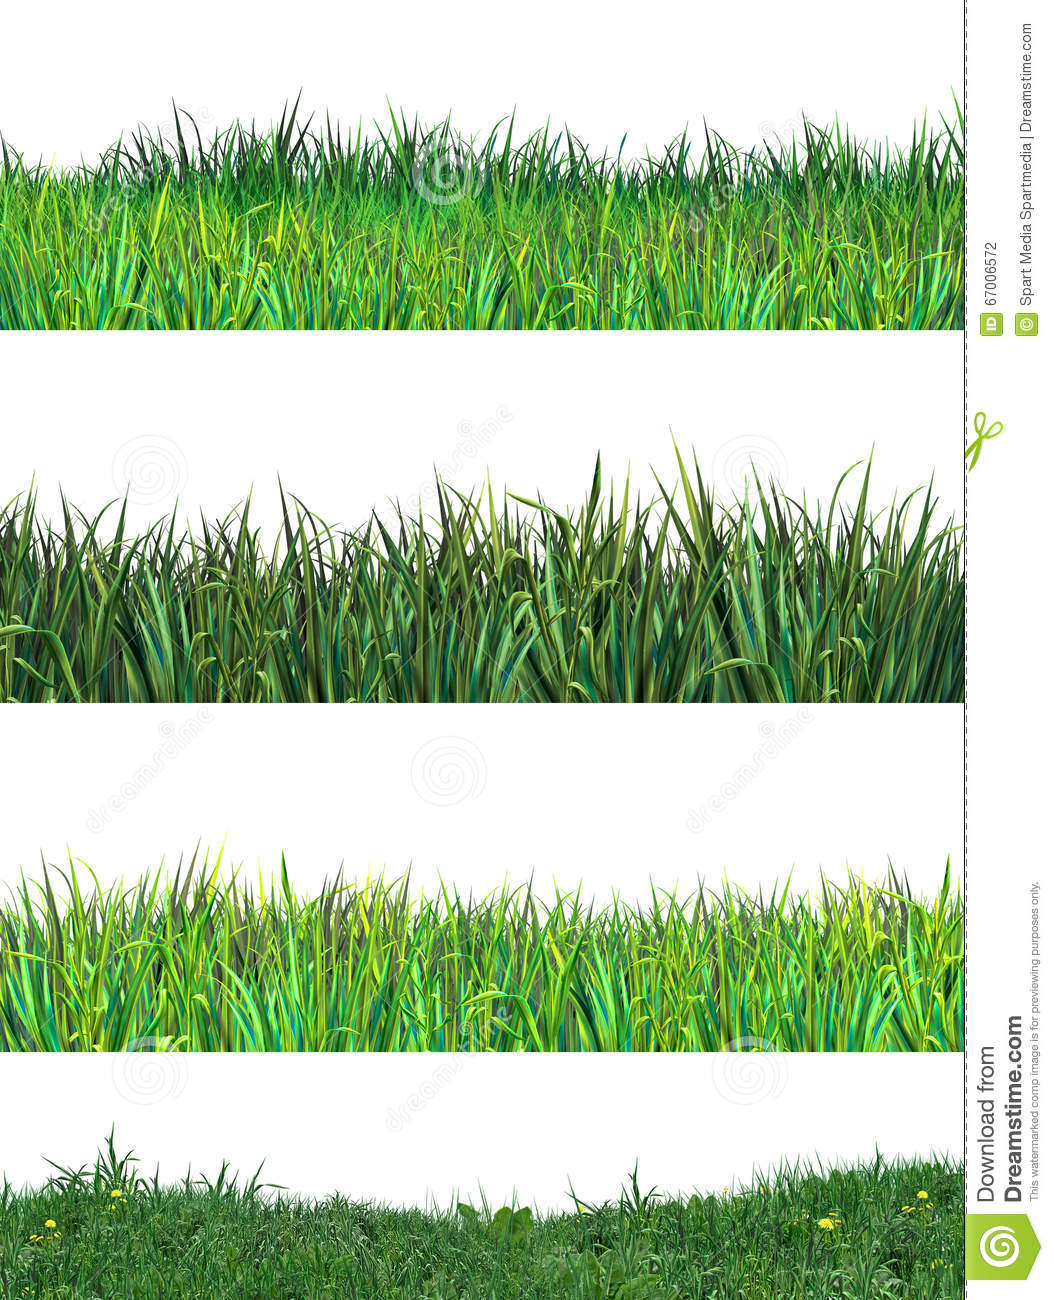 Download Green Grass Set Clip Art Grassland Stock Photo - Illustration of abstract, decor: 67006572